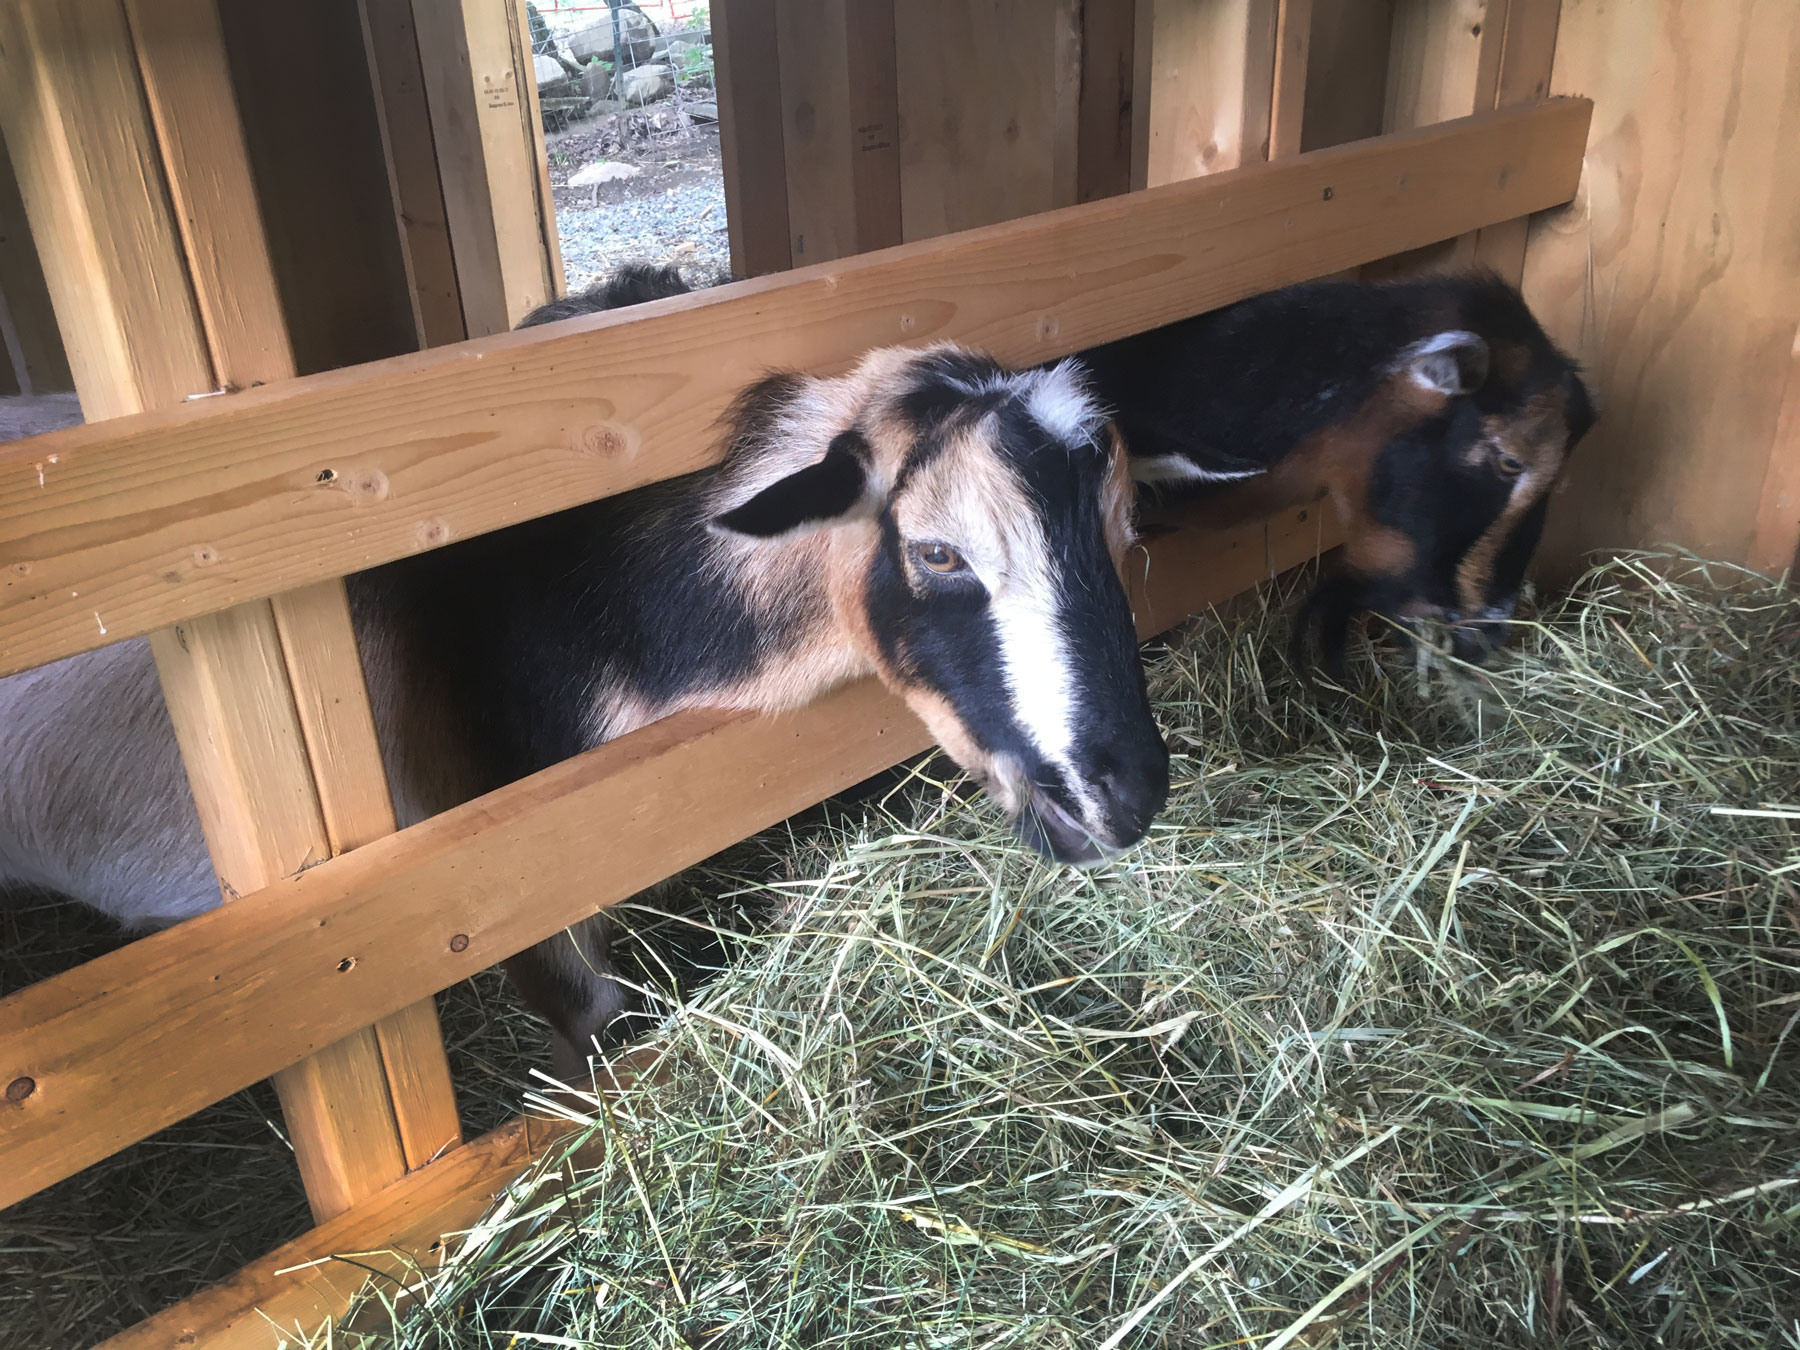 Two goats at the petting zoo of the Sugarbush Cheese & Maple Farm in Woodstock, Vermont